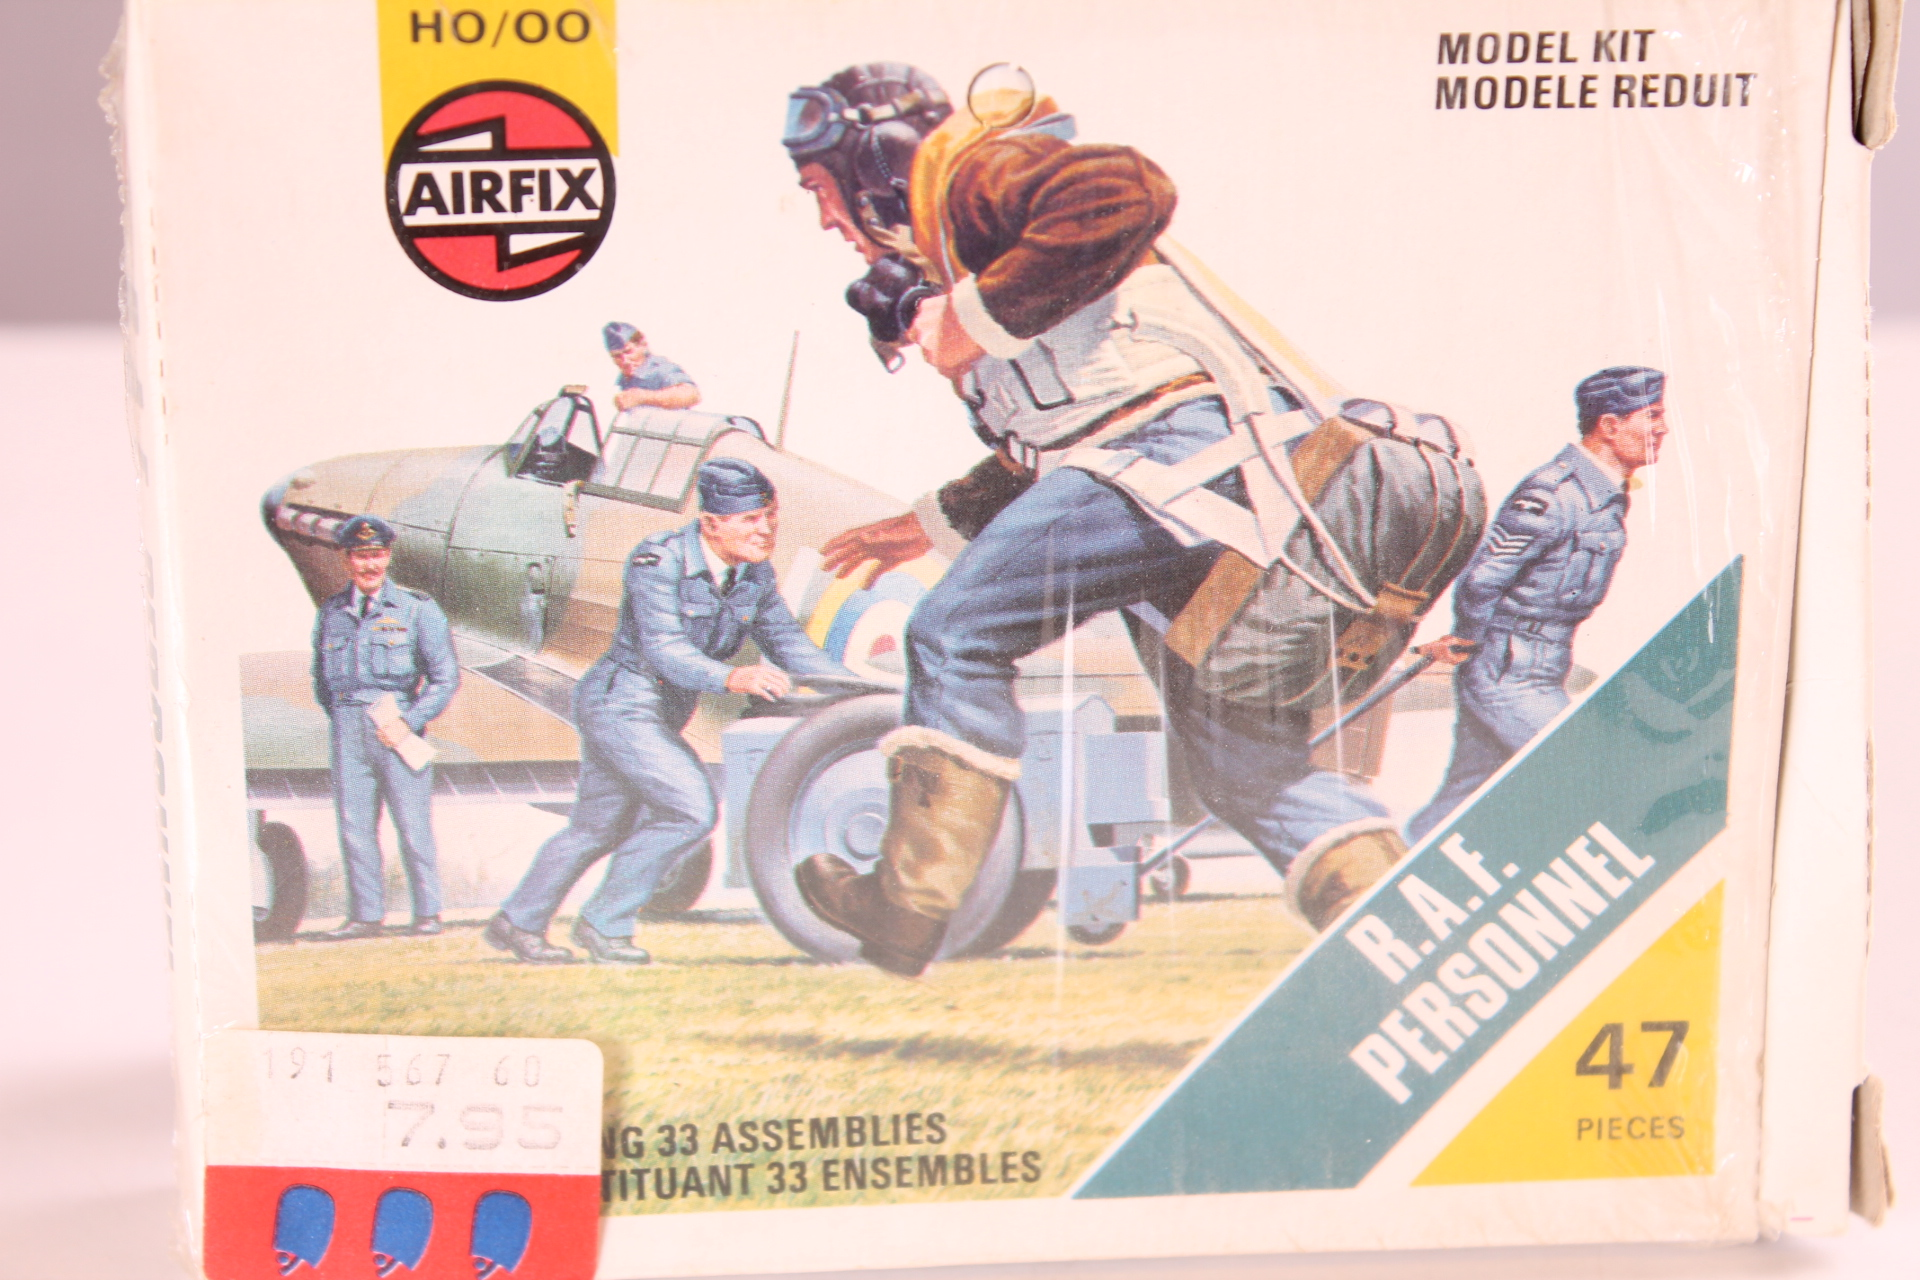 *1/87 Airfix 01747-5 HO/OO R.A.F. Personnel